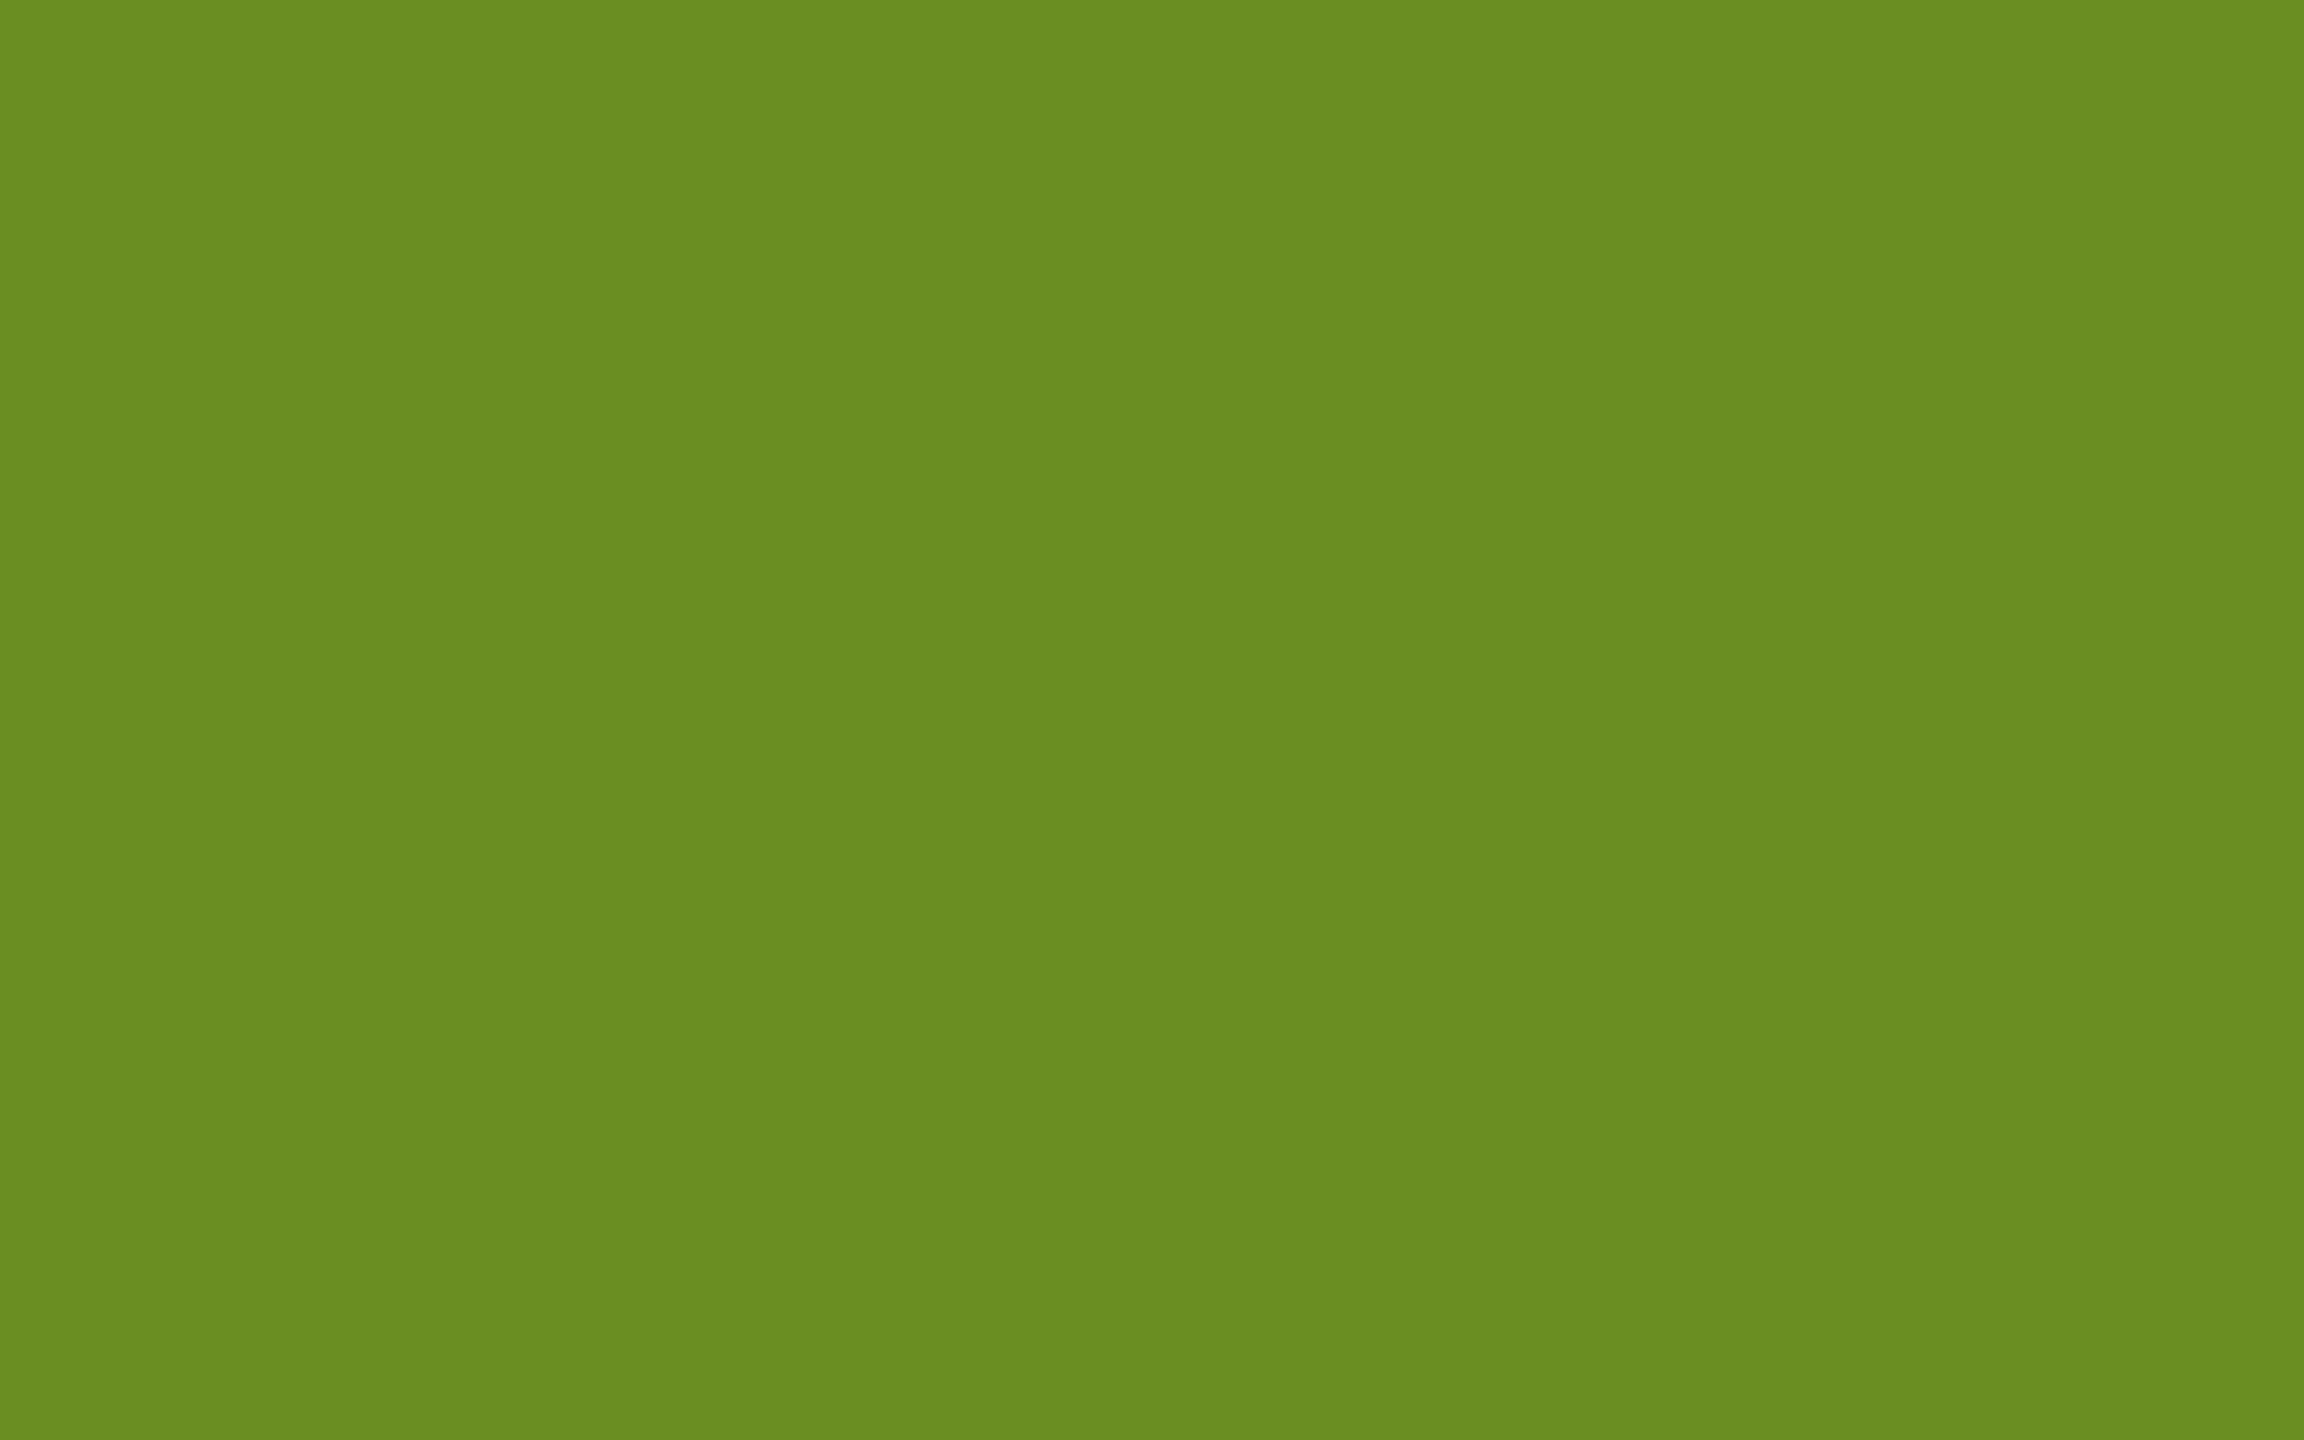 2304x1440 Olive Drab Number Three Solid Color Background